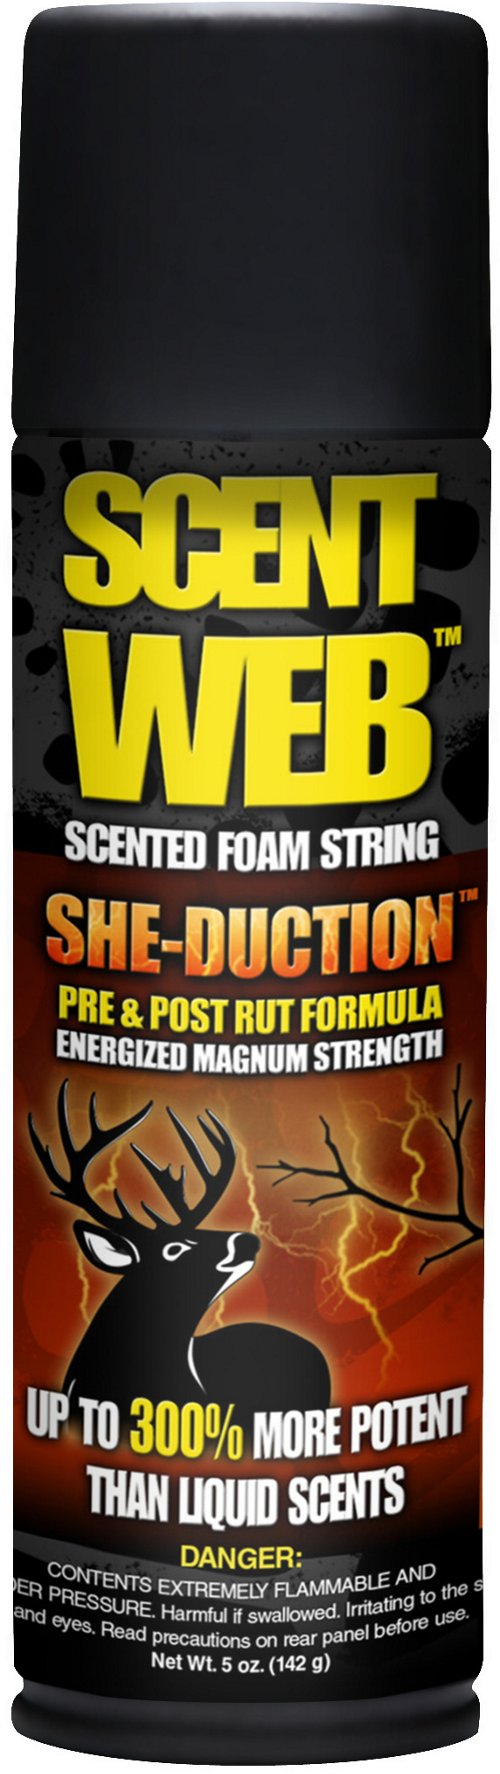 A-Way Hunting Products Scent Web She-Duction Deer Attractant Brown - Hunting Equipment And Accessories, Game Scents And Attracts at Academy Sports thumbnail